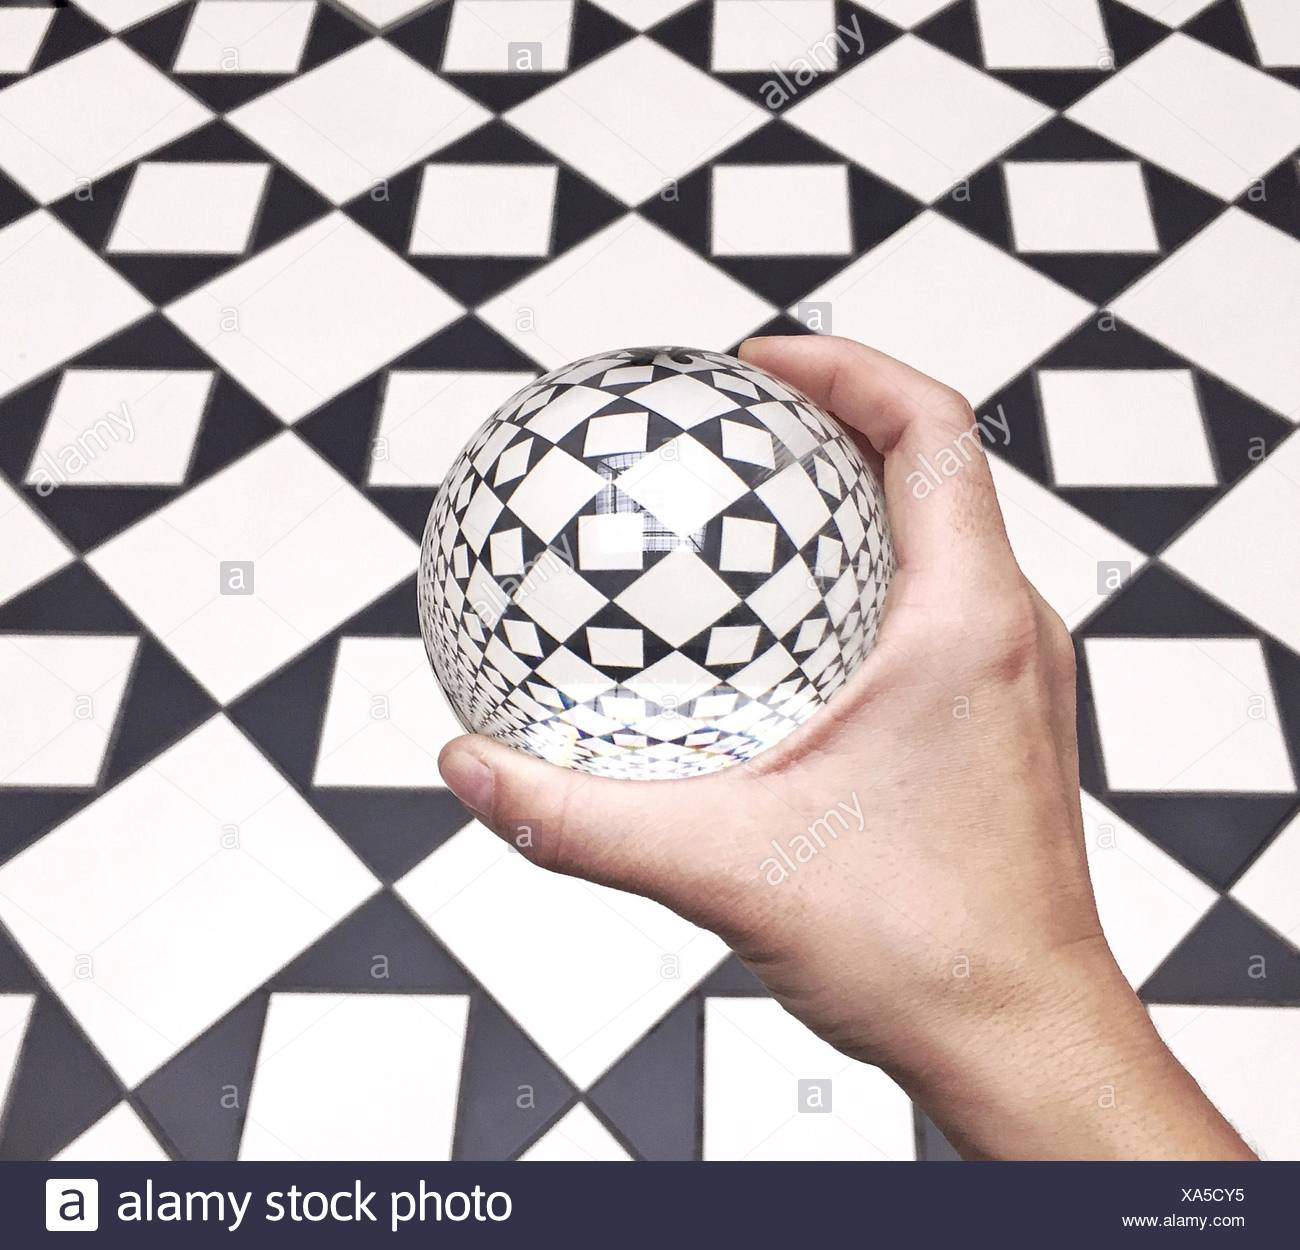 Close-Up Of Hand Holding Ball Against Chequered Floor - Stock Image